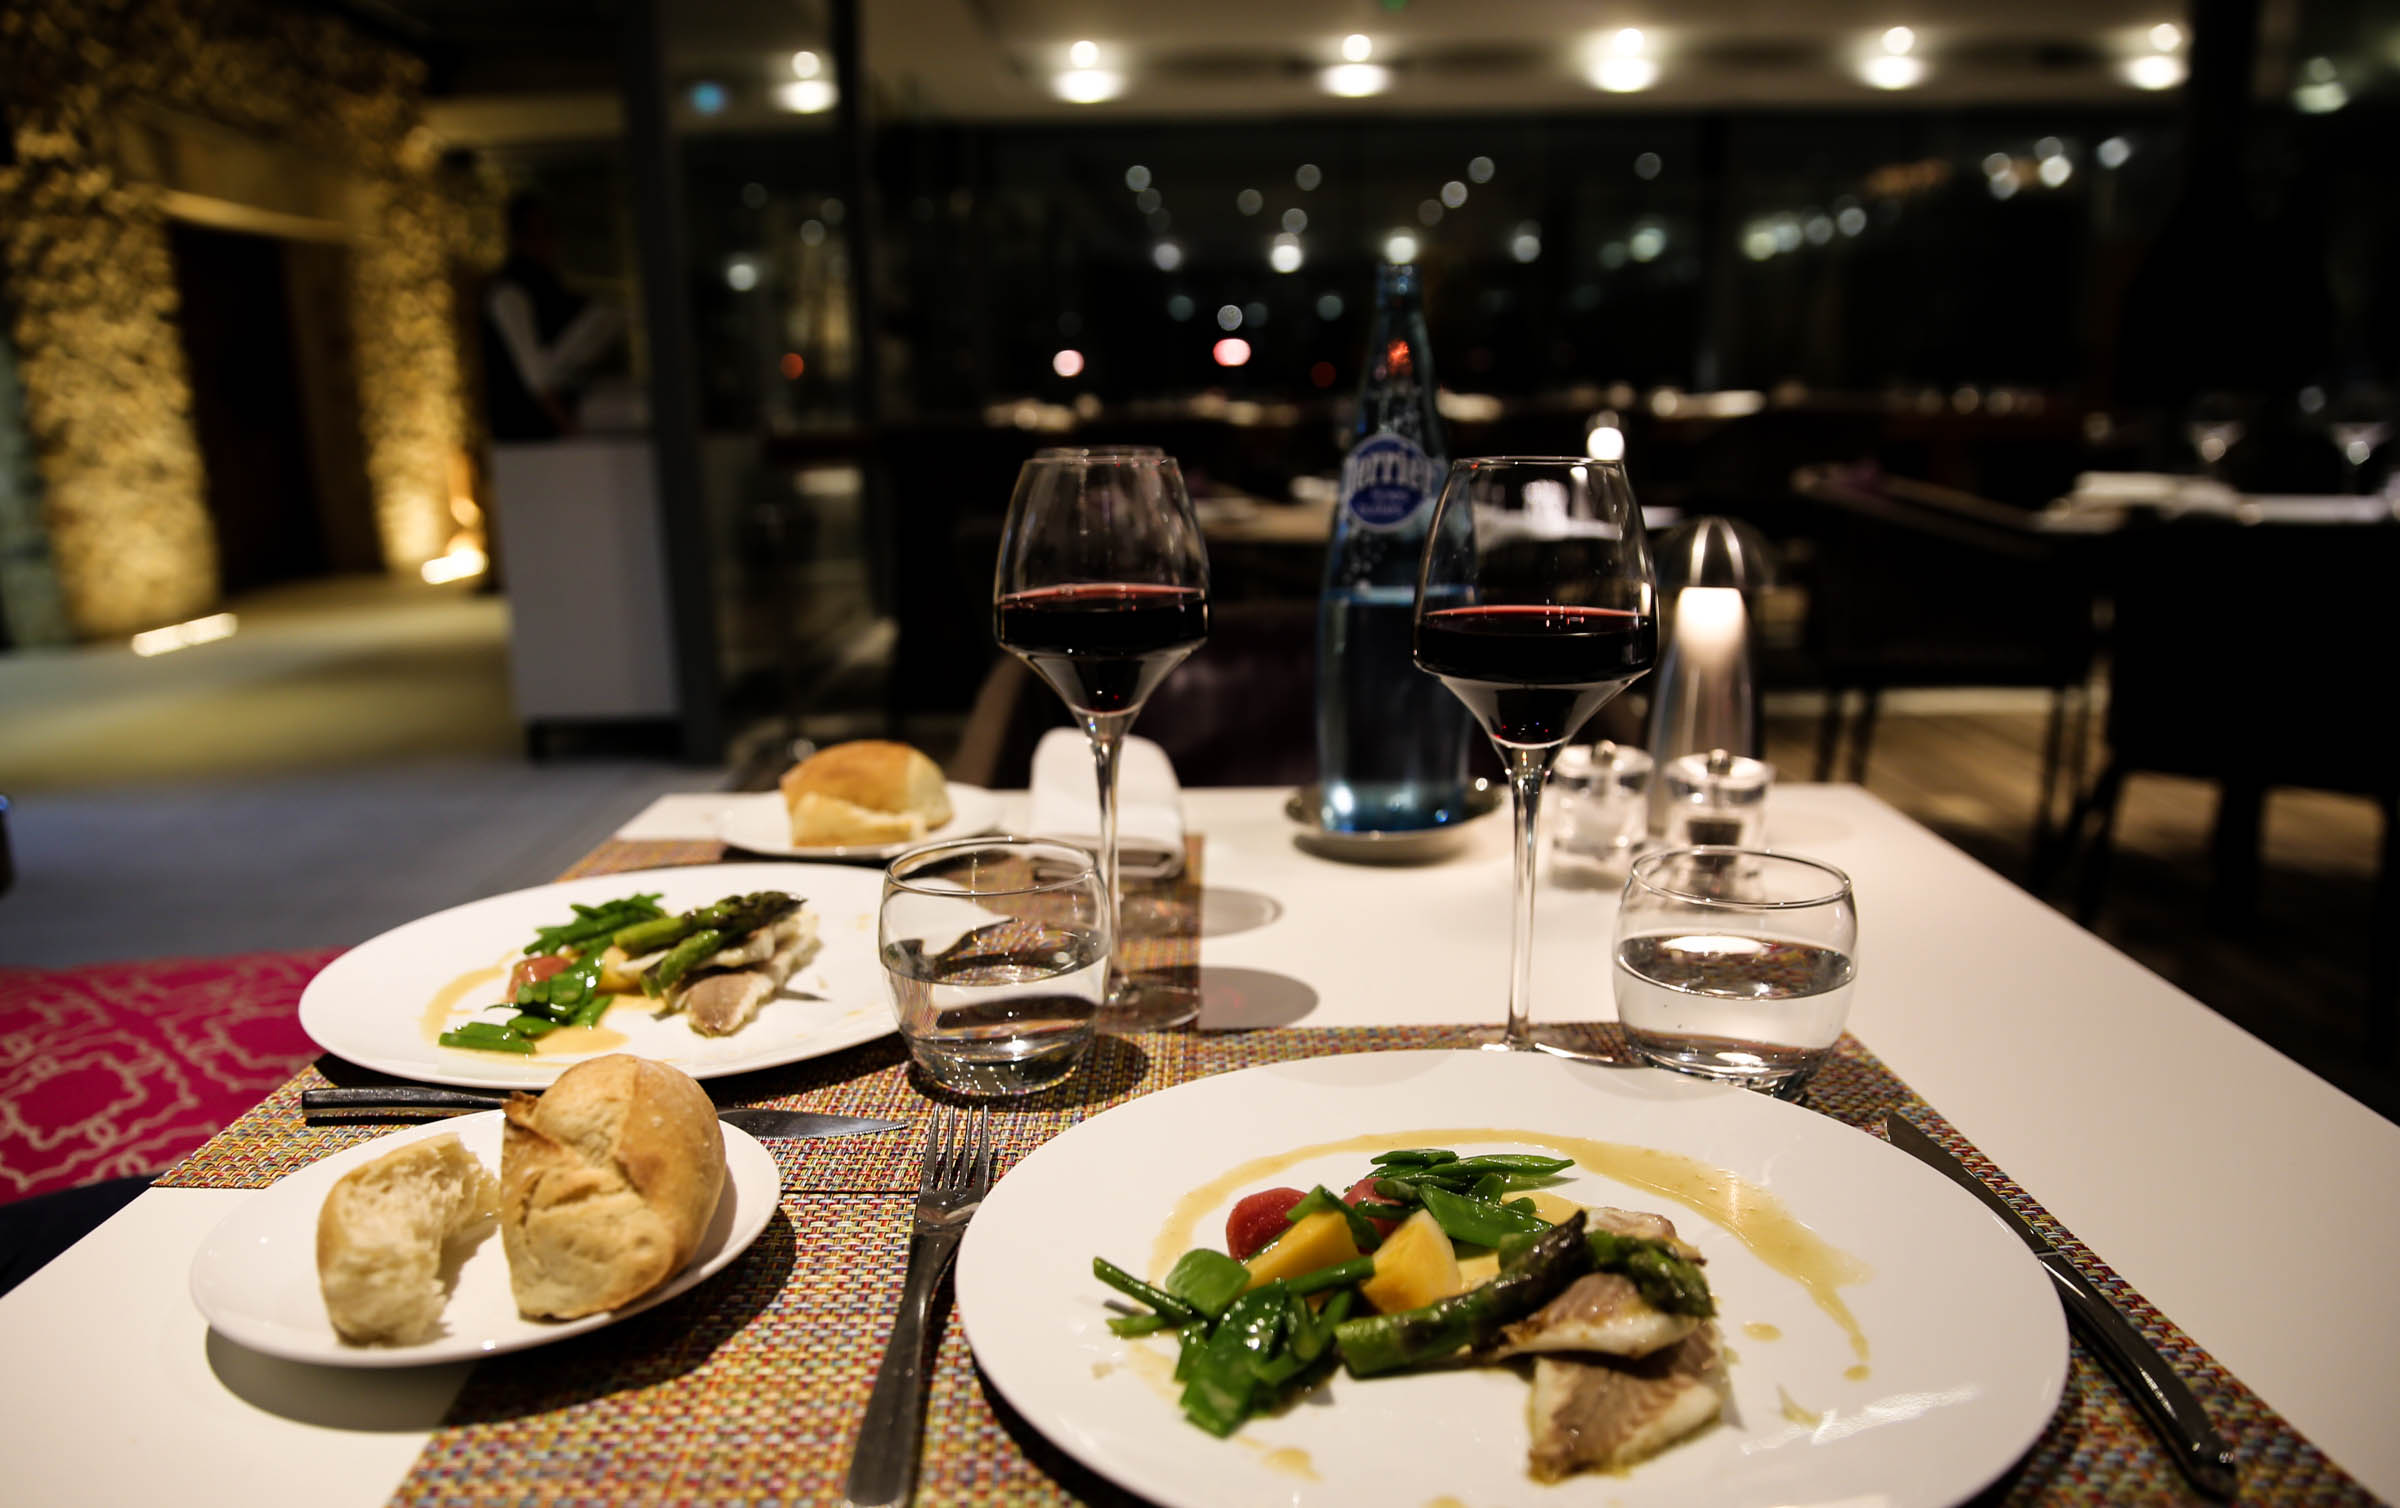 Sea Bream and vegetables with white butter. Wine: Cuvée 1582 Rouge 2016